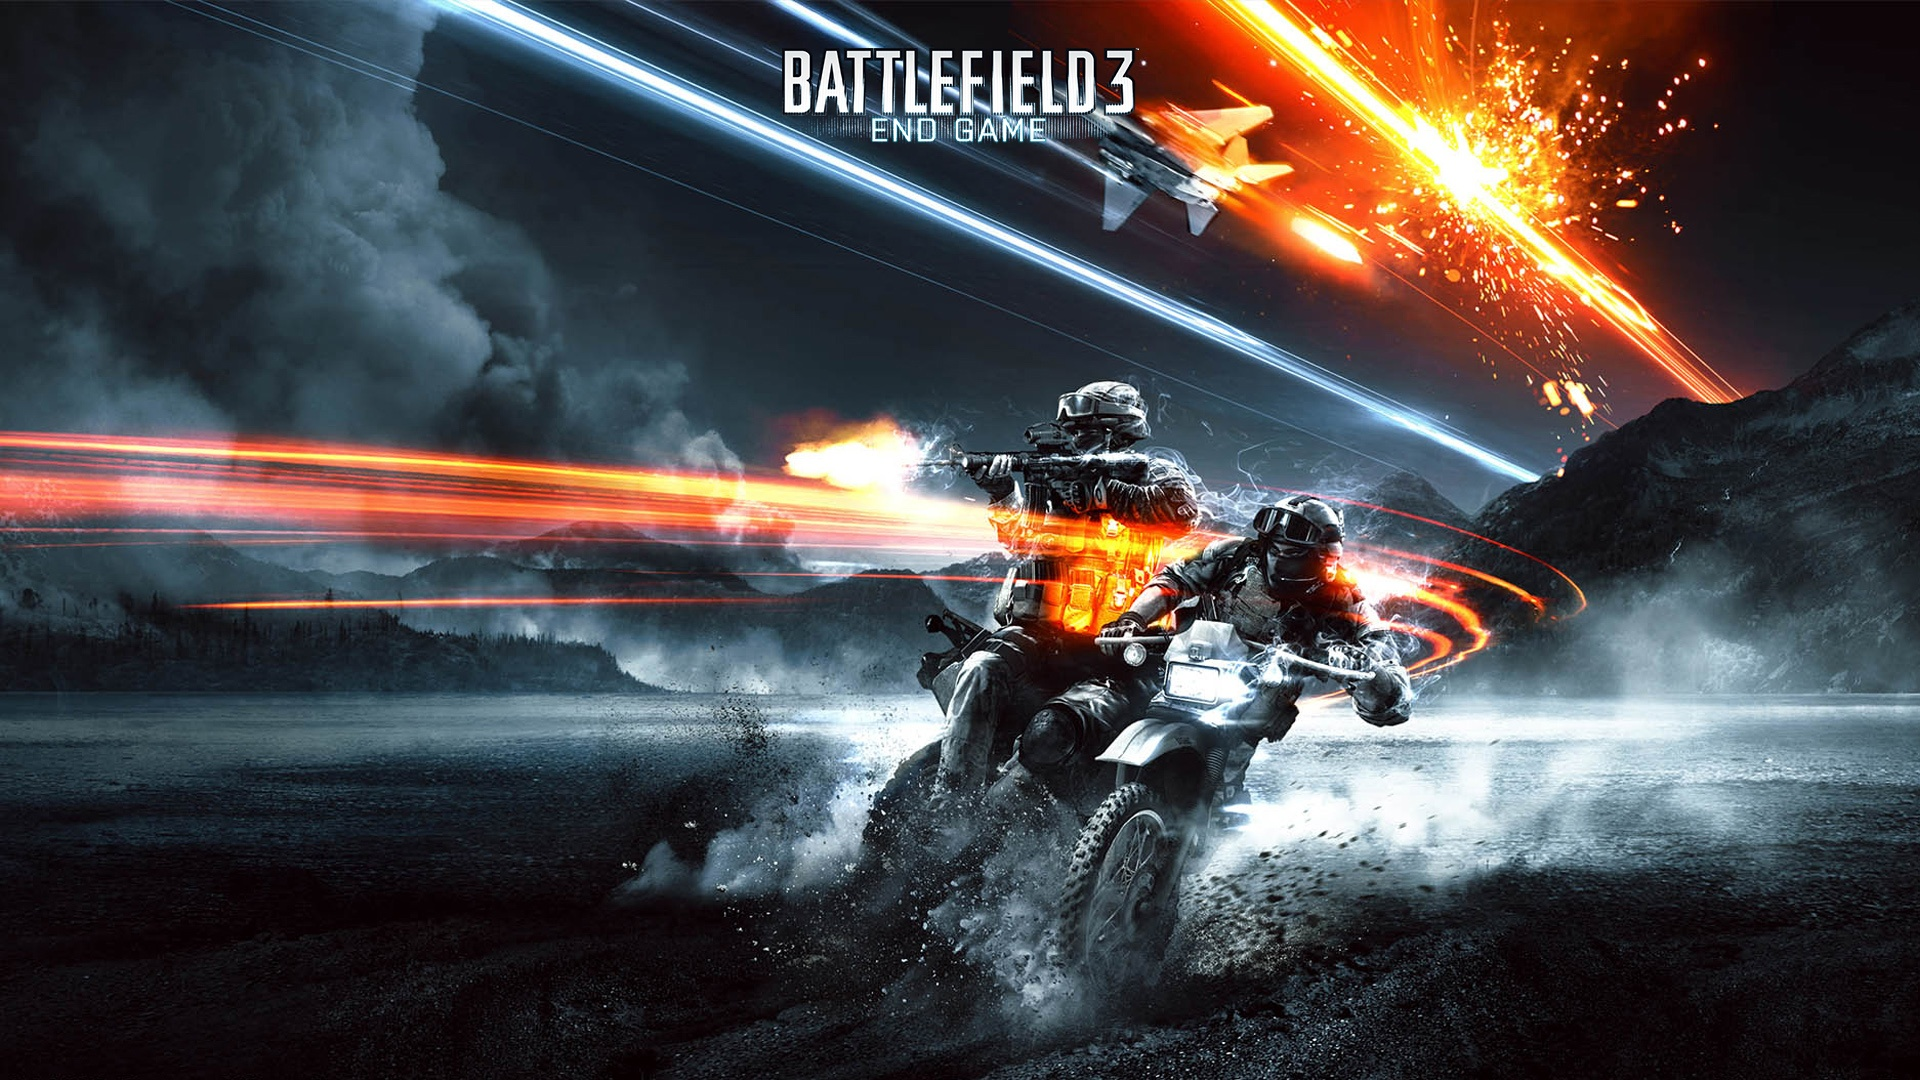 Battlefield 3 End Game Wallpapers HD Wallpapers 1920x1080